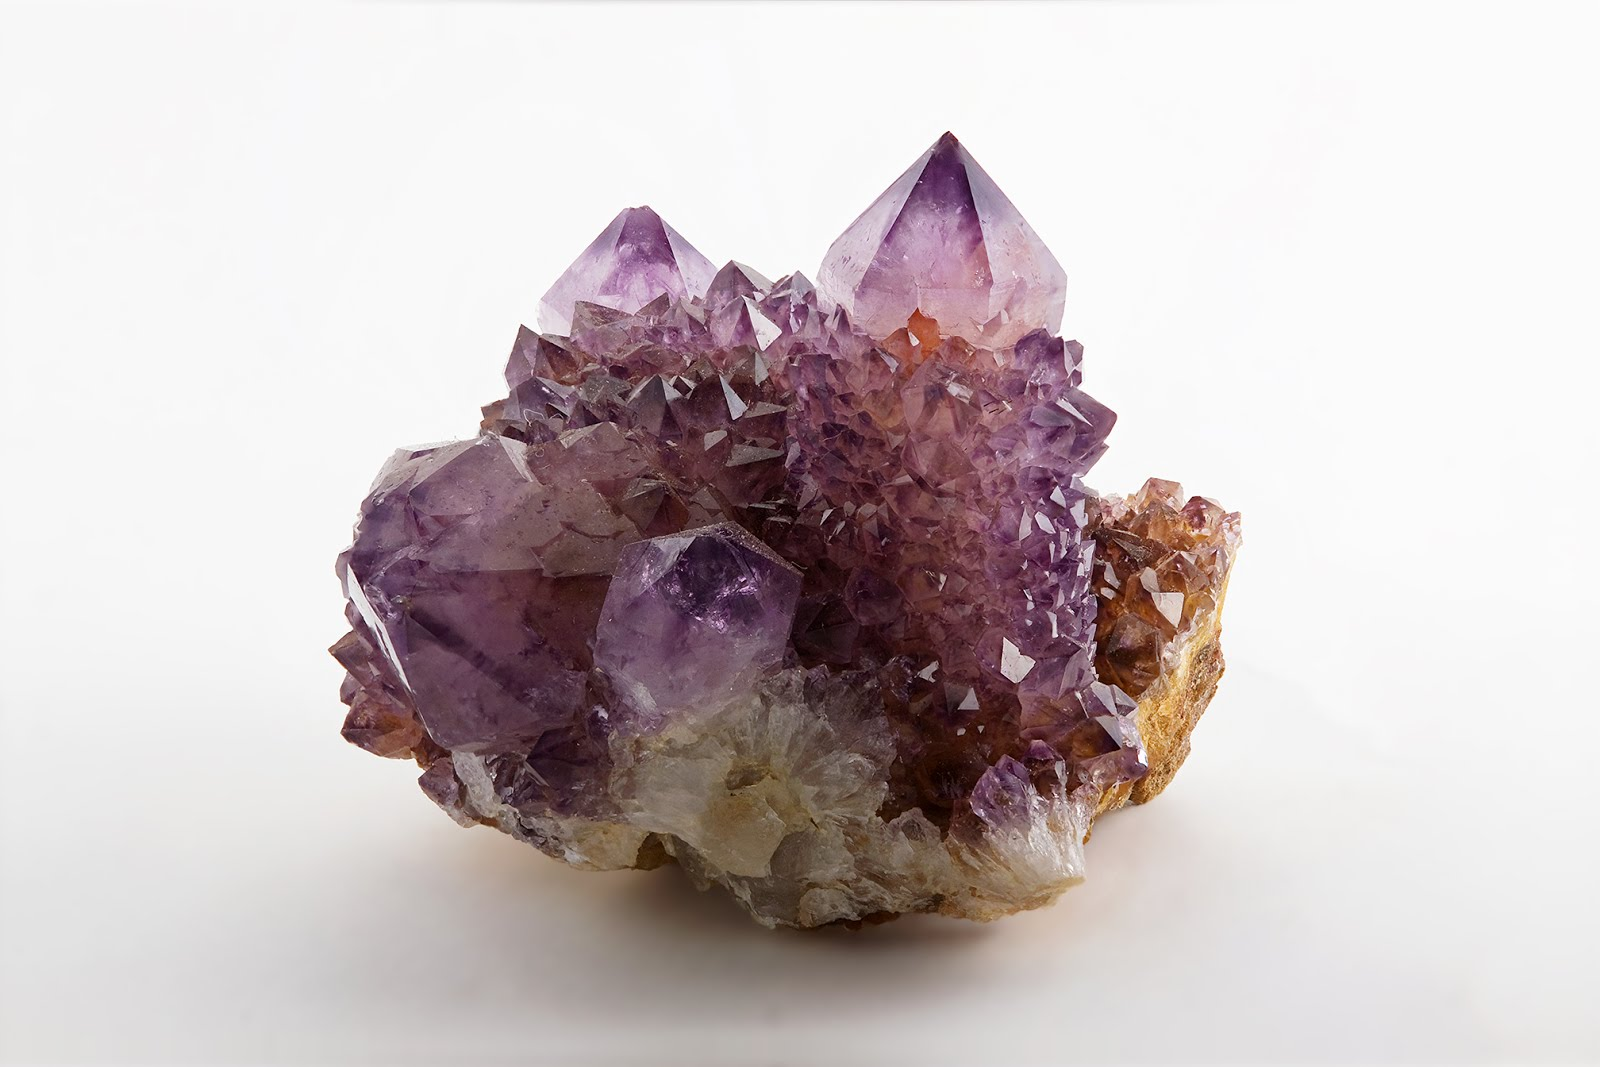 Amethyst._Magaliesburg,_South_Africa.jpg